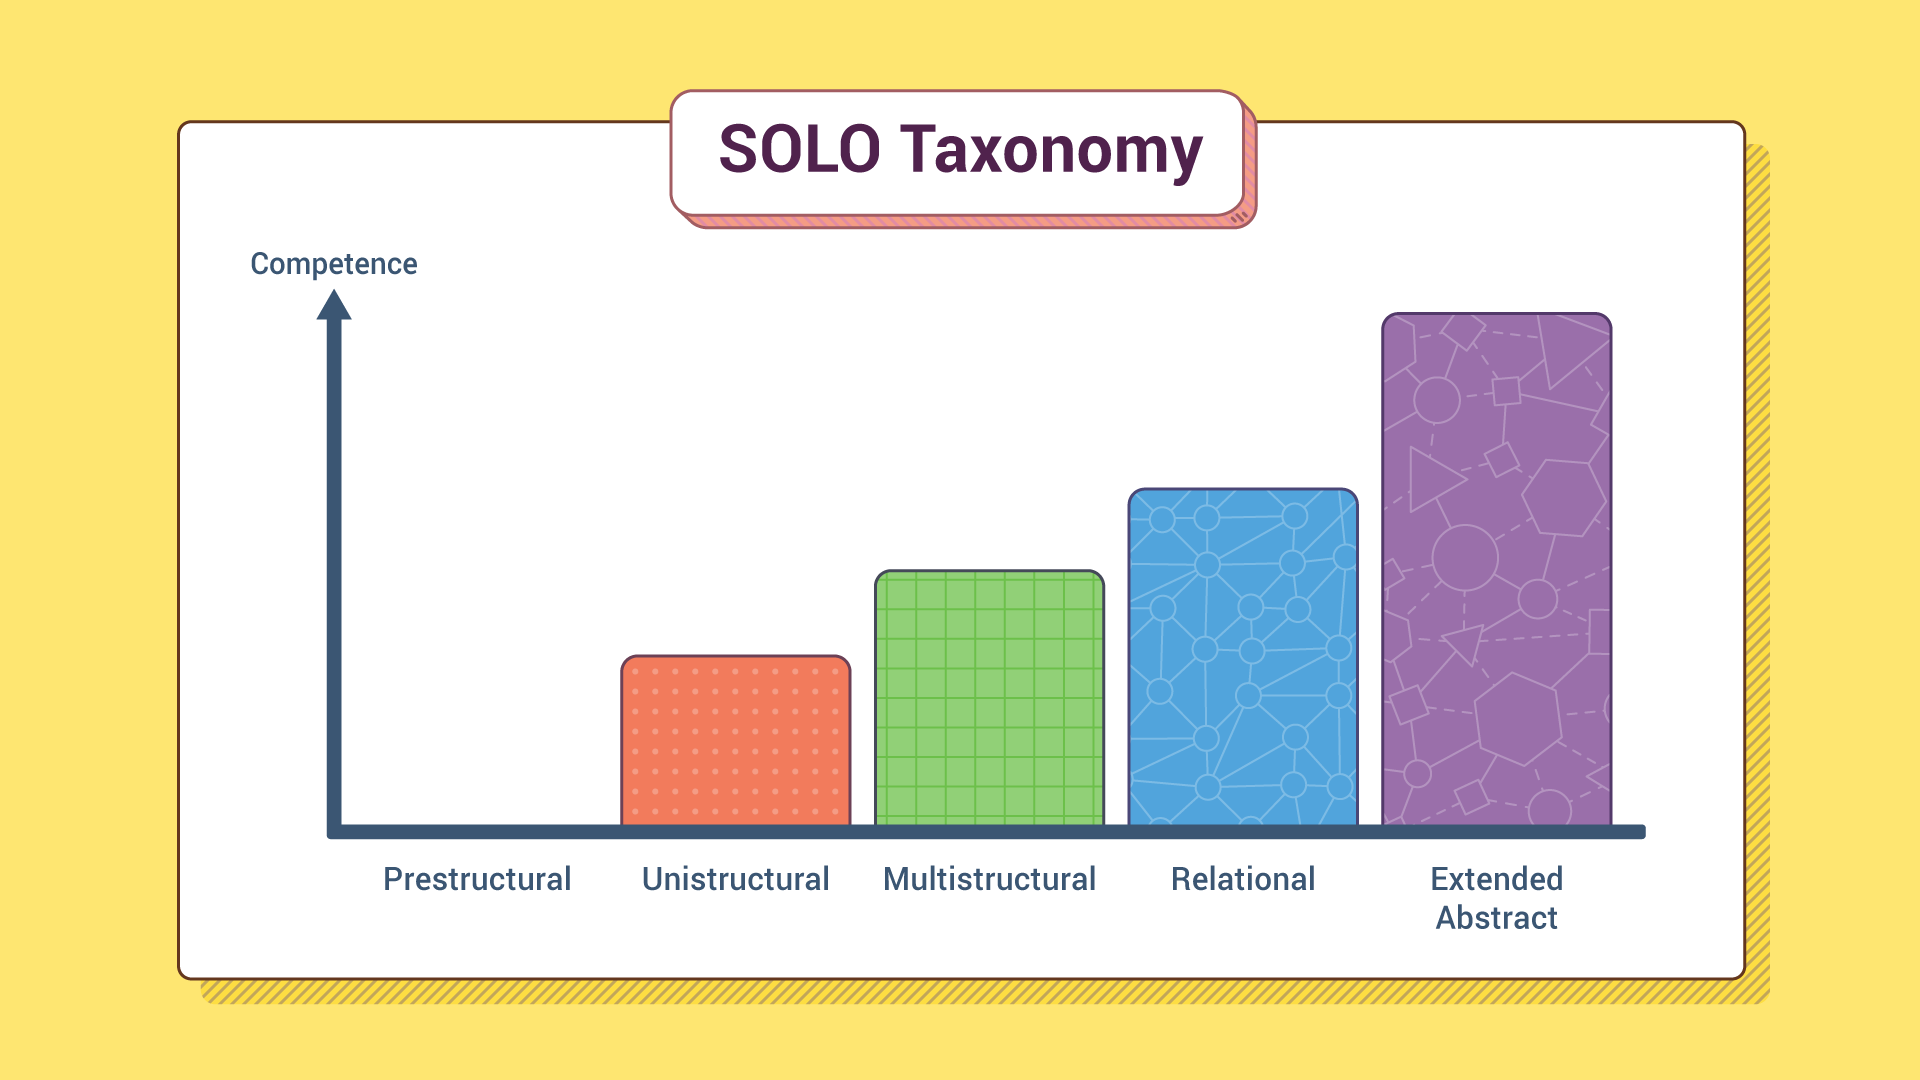 SOLO taxonomy bar graph, y axis titled competence. On the x axis the bars are labelled from left to right as prestructural, unistructural, multistructural, relational, and extended abstract. There is an increase in the height of each bar from left to right, from a bar of zero height for prestructural.